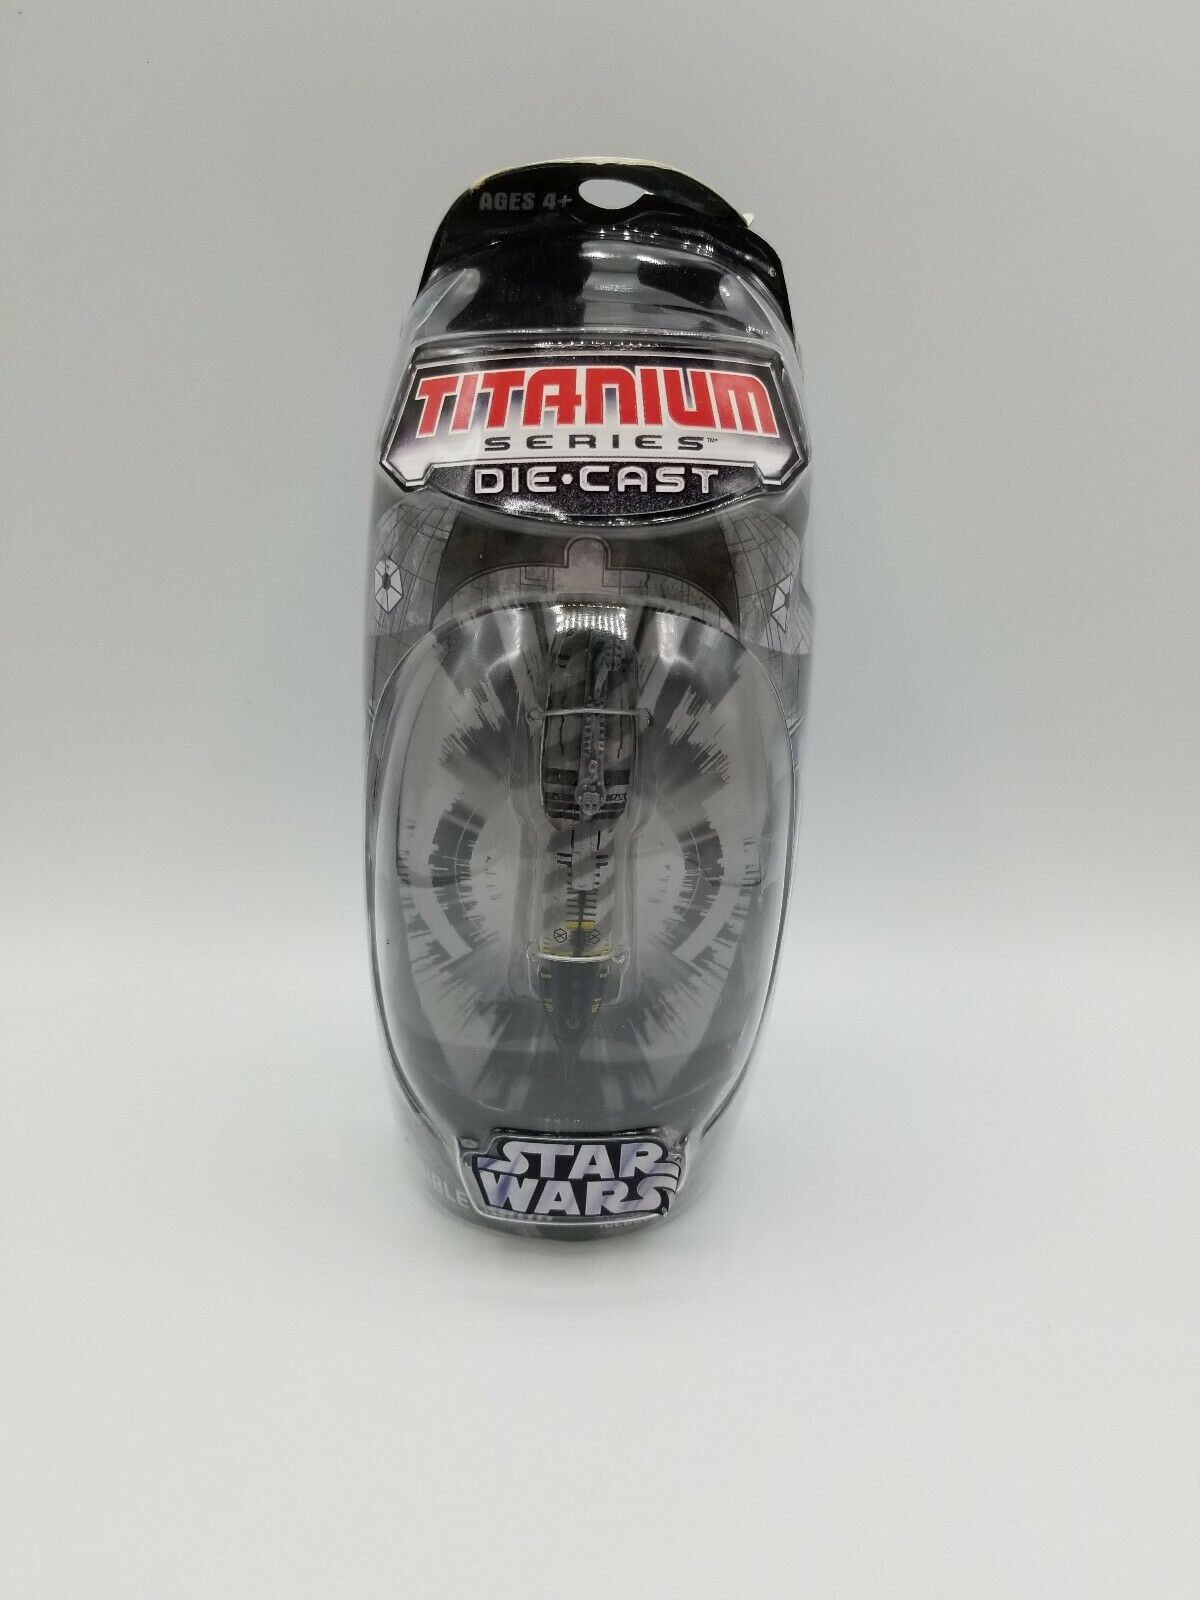 Star Wars Titanium Series Invisible Hand Ship Die-Cast Display Stand Hasbro 2006